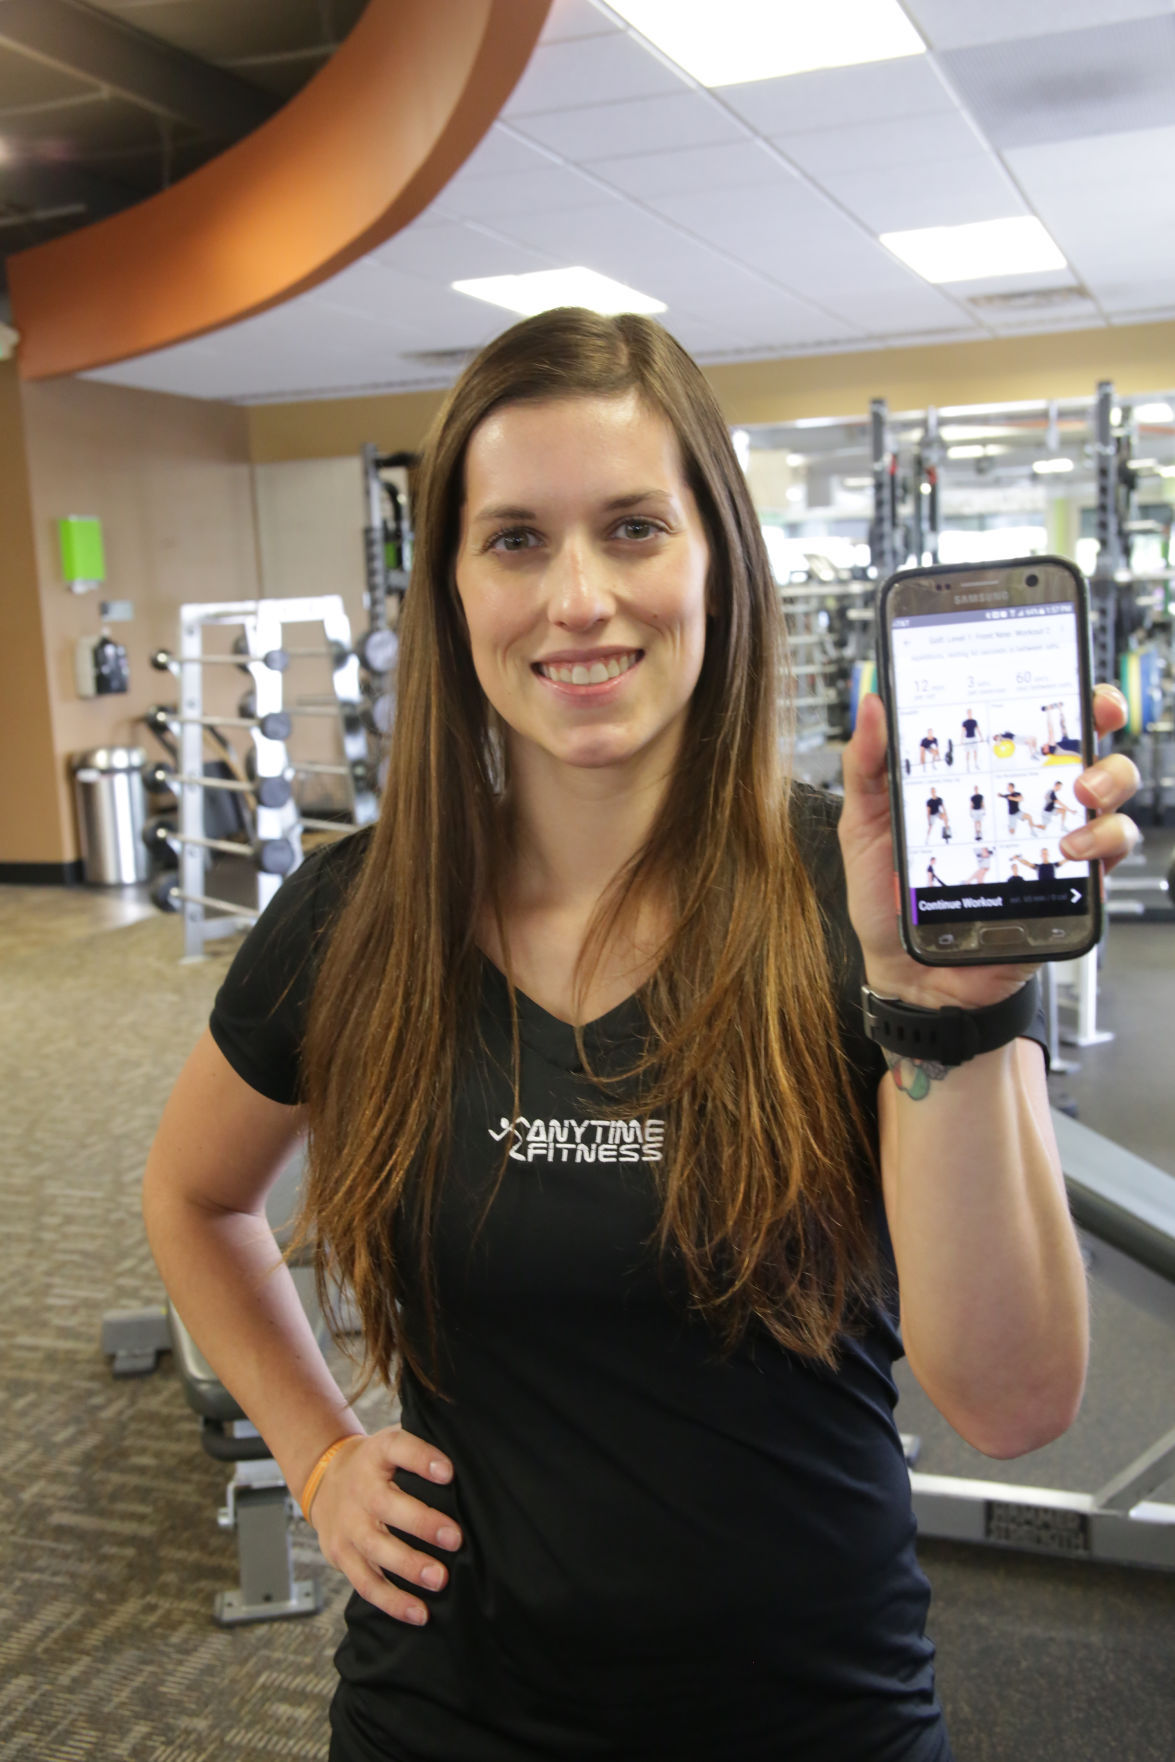 Fitness apps, growing in popularity, change the workout game